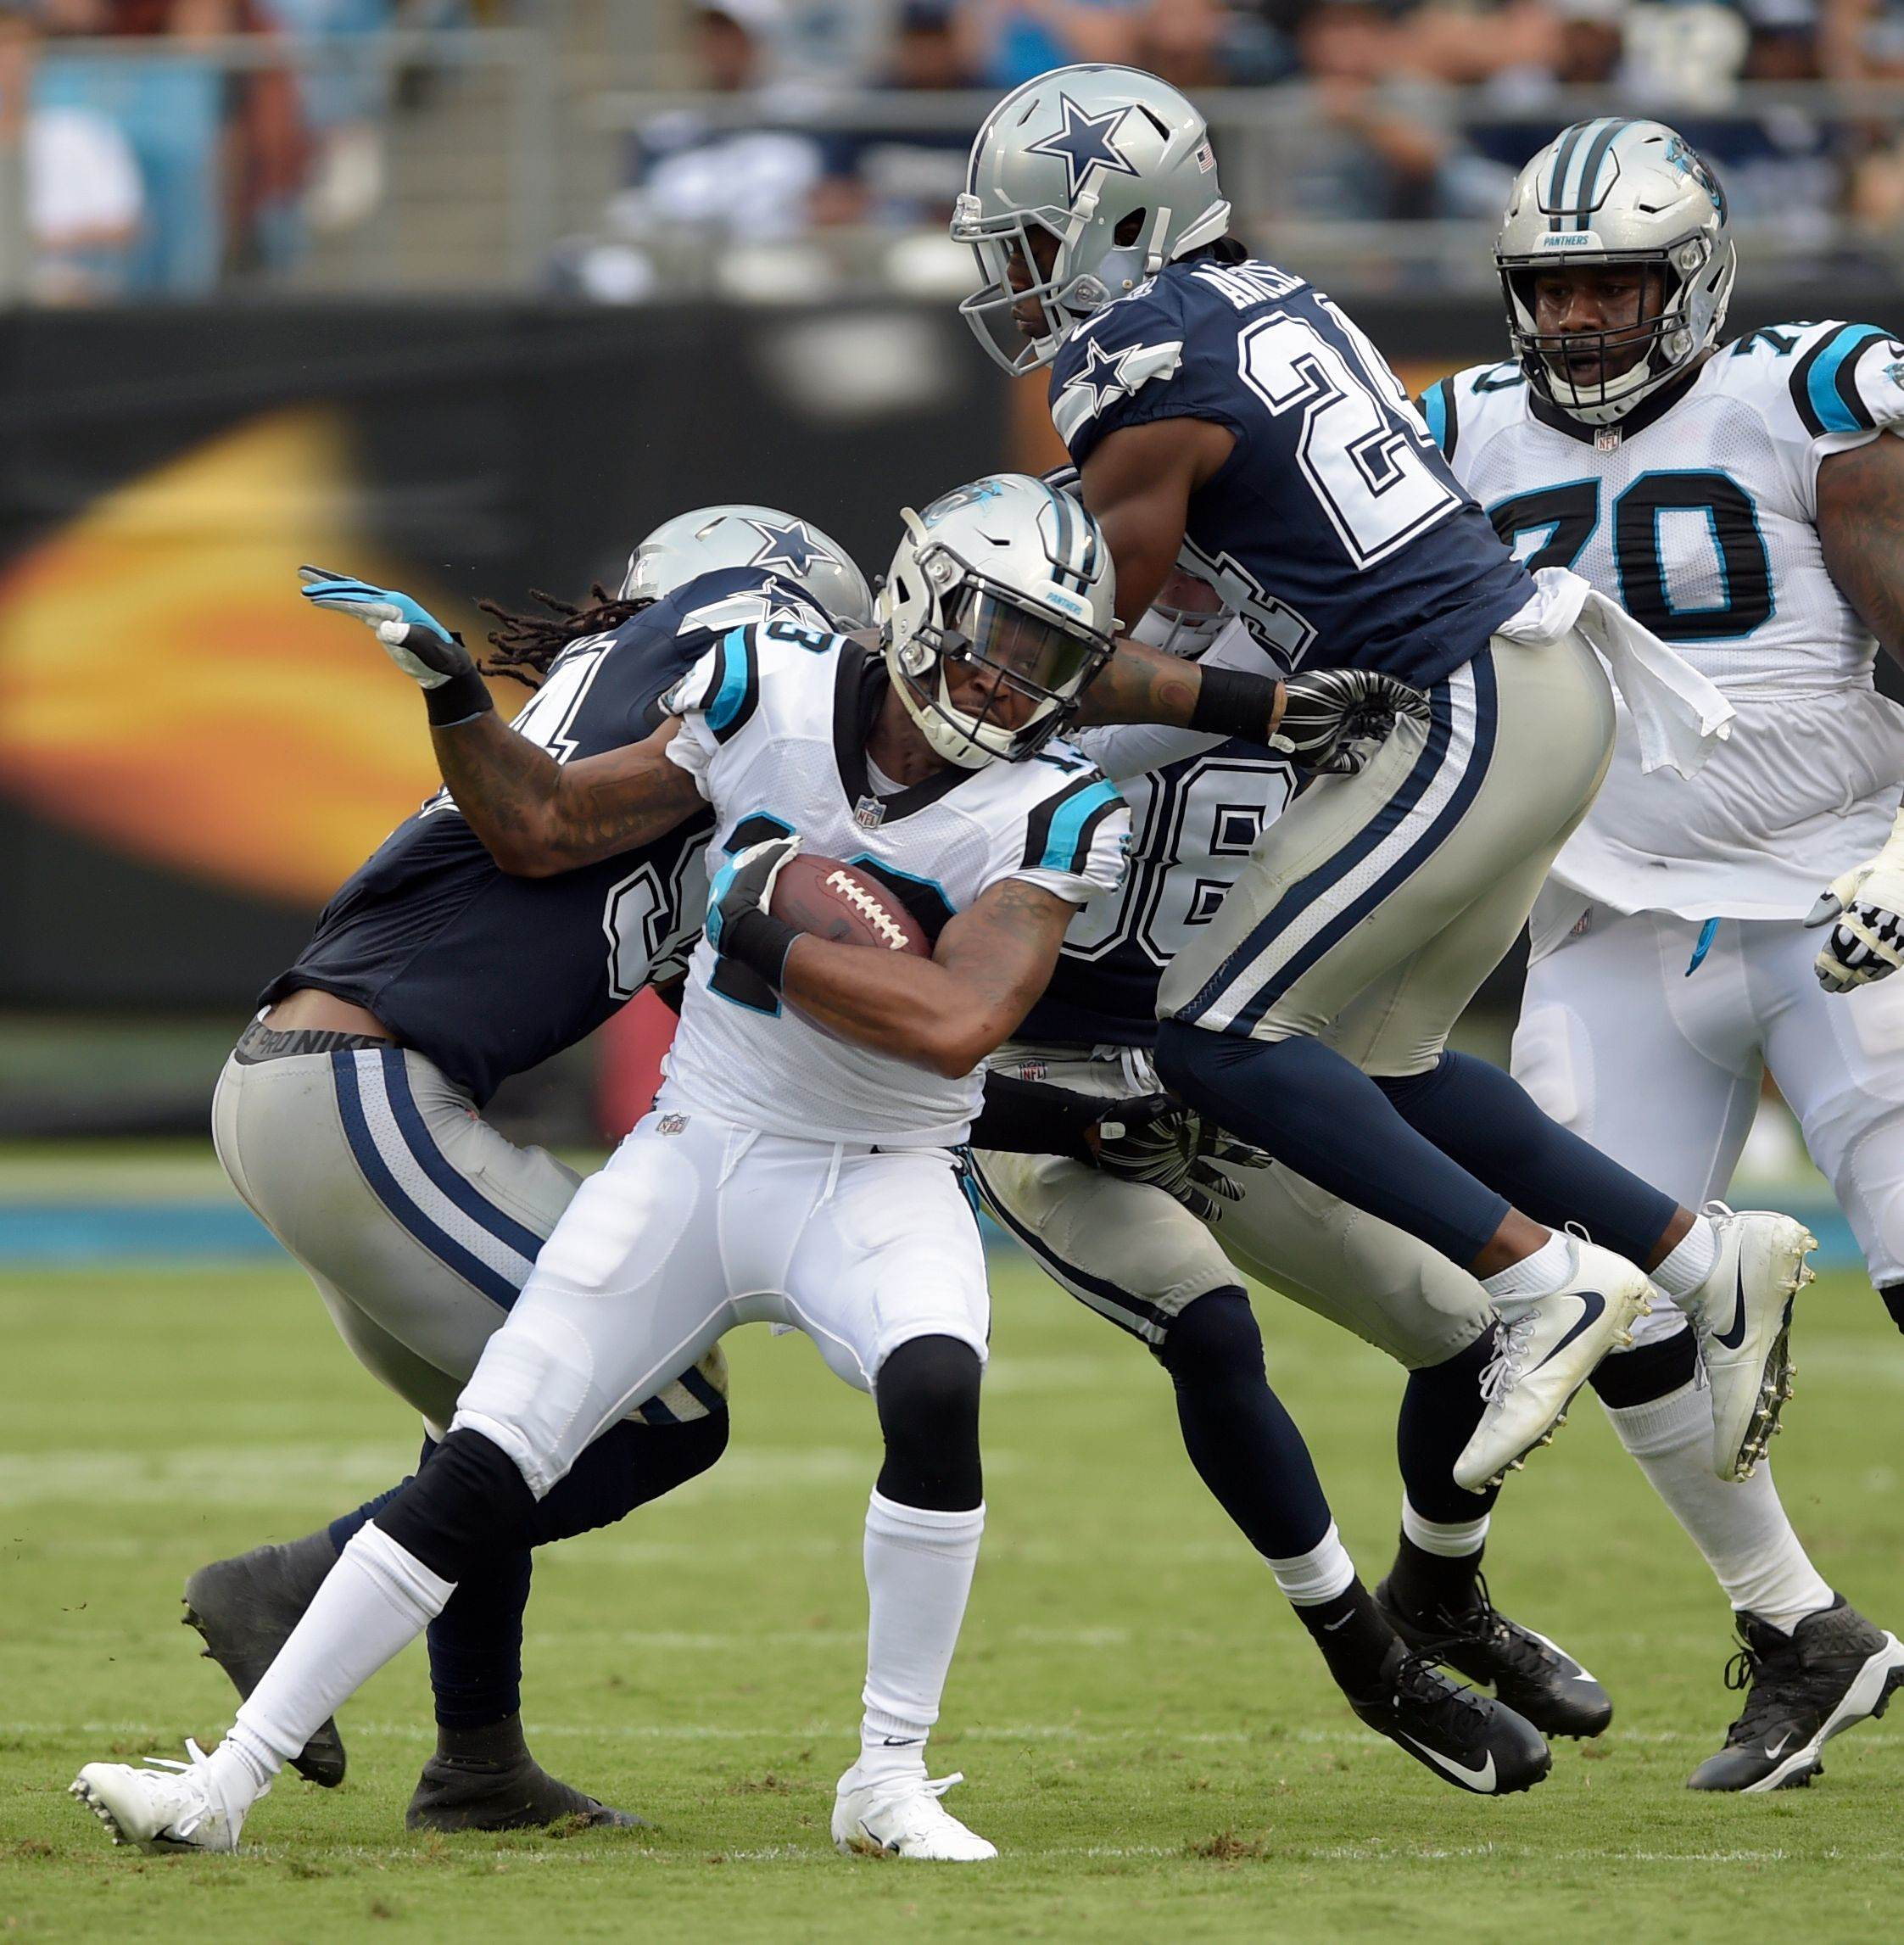 Jwilliams_game-notes_in-disastrous-outing-cowboys-defense-provides-bright-spot